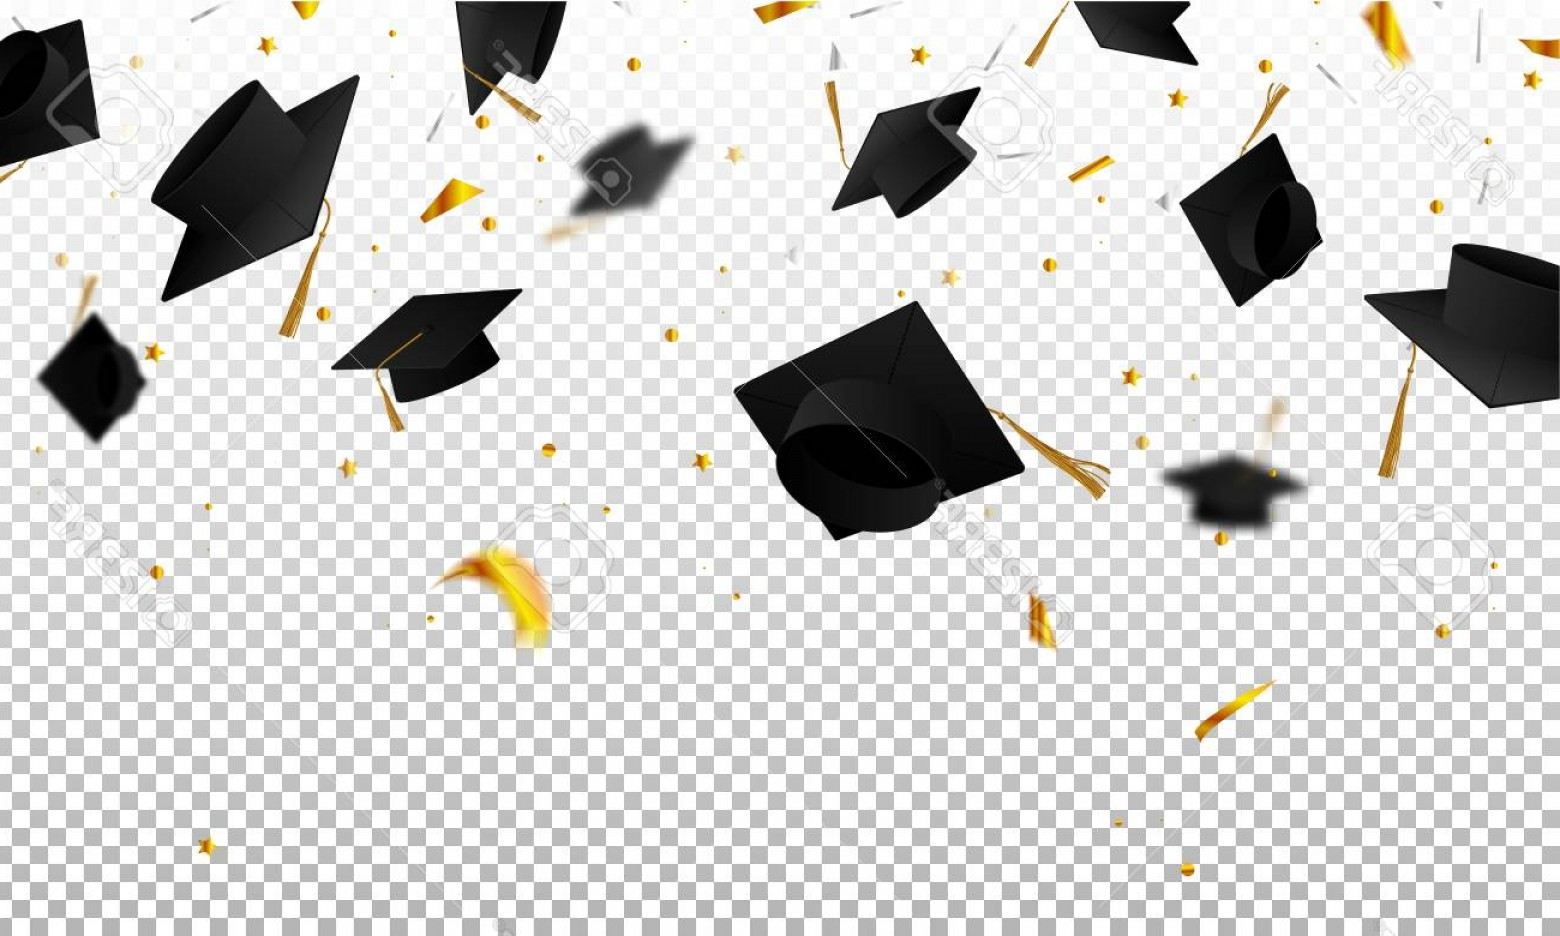 Graduation clipart background image download Photostock Vector Graduate Caps And Confetti On A Transparent ... image download